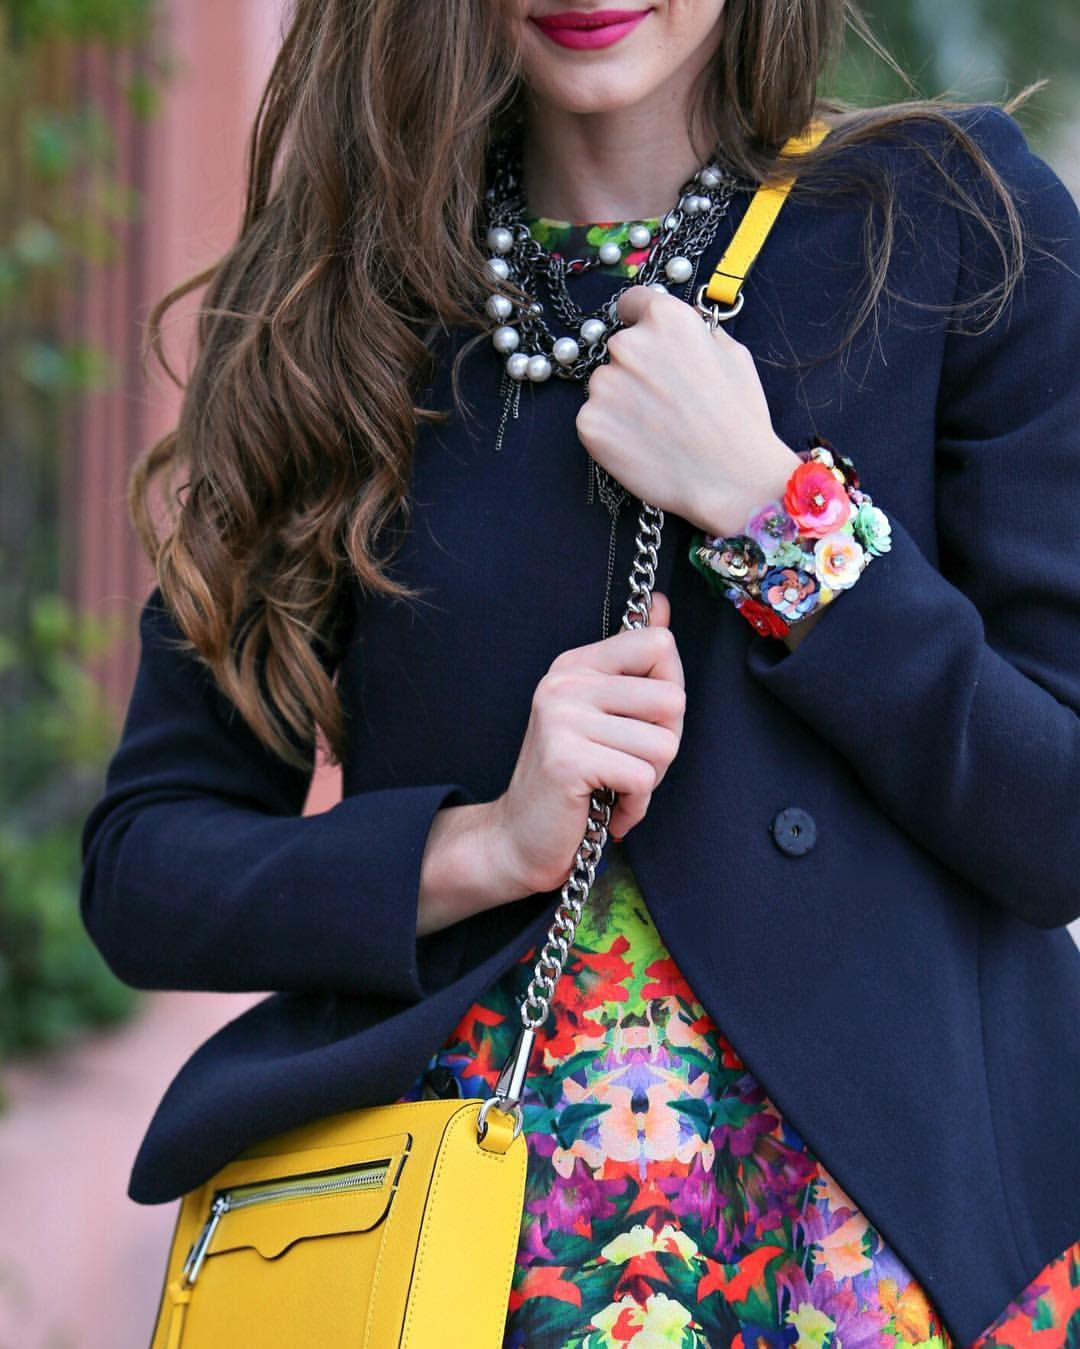 """Kyleigh McCollam on Instagram: """"Don't miss today's post, as I reveal my 8 secrets on how mix & match colors to perfection.❤️ (link in bio) @kaunishetki photo #fashion #style #blogger #spring #color #floral #print @rebeccaminkoff"""""""